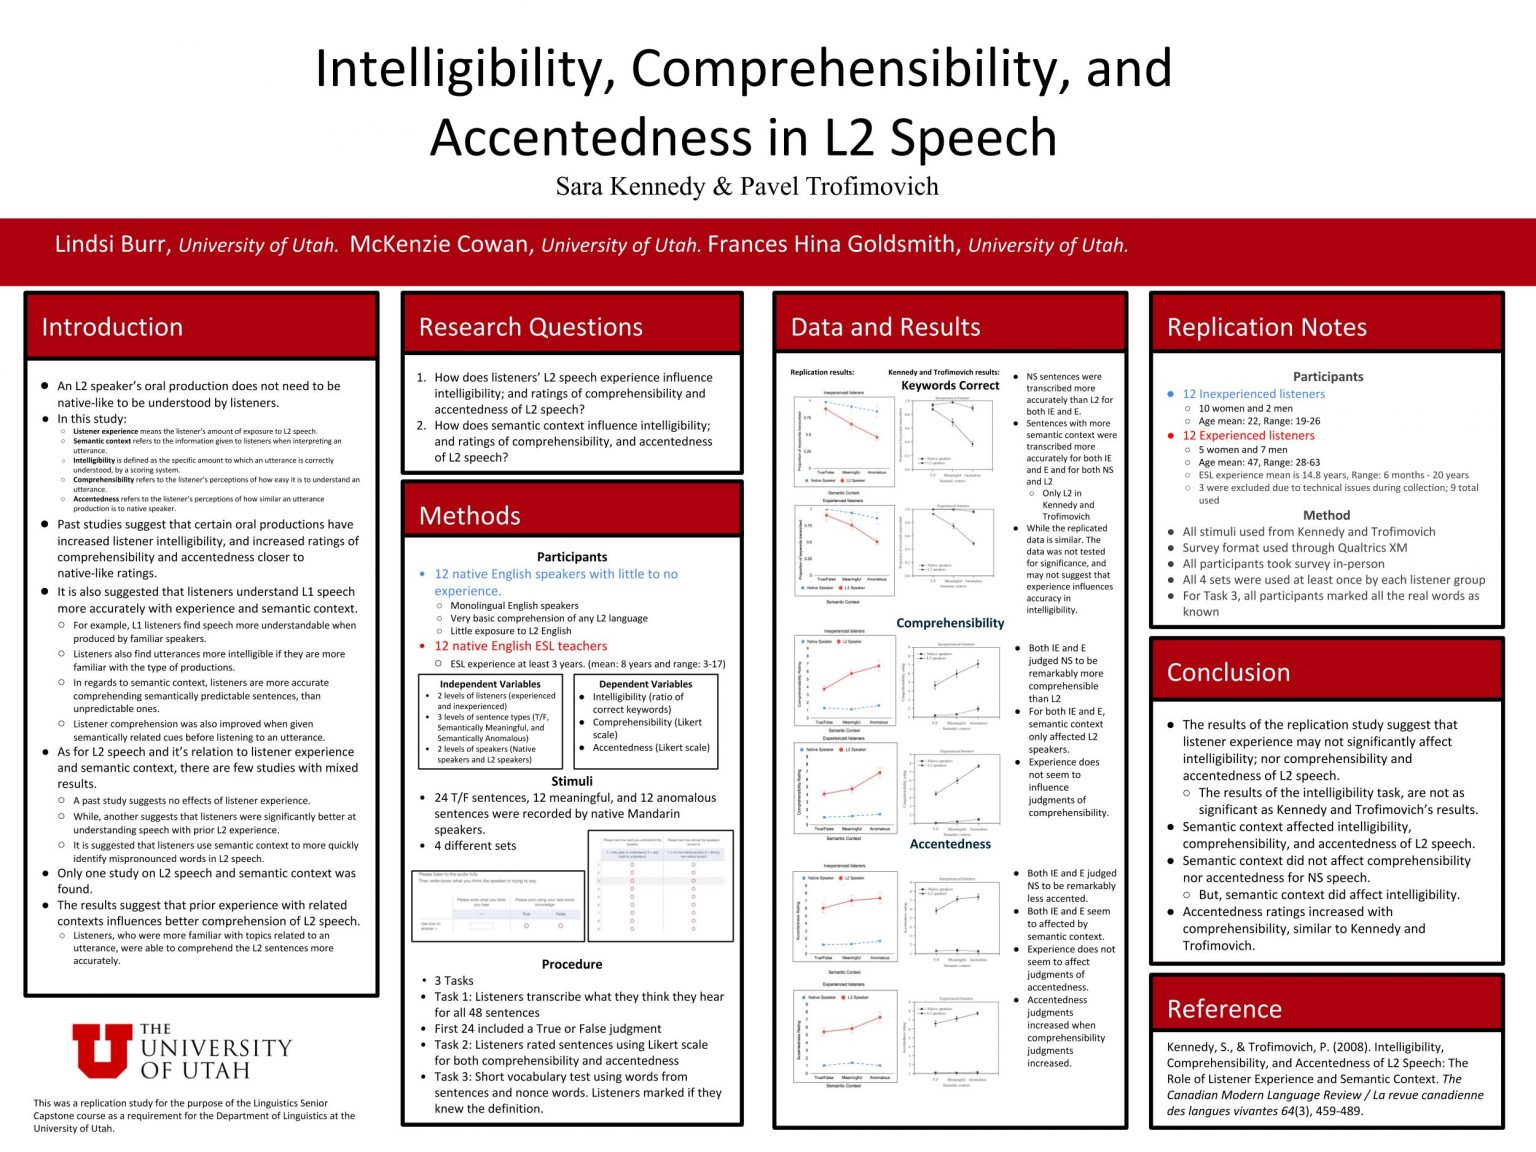 Mckenzie Cowan, Lindsi Burr, Frances Hina Goldsmith - Intelligibility, Comprehencibility, and Accentedness in L2 Speech